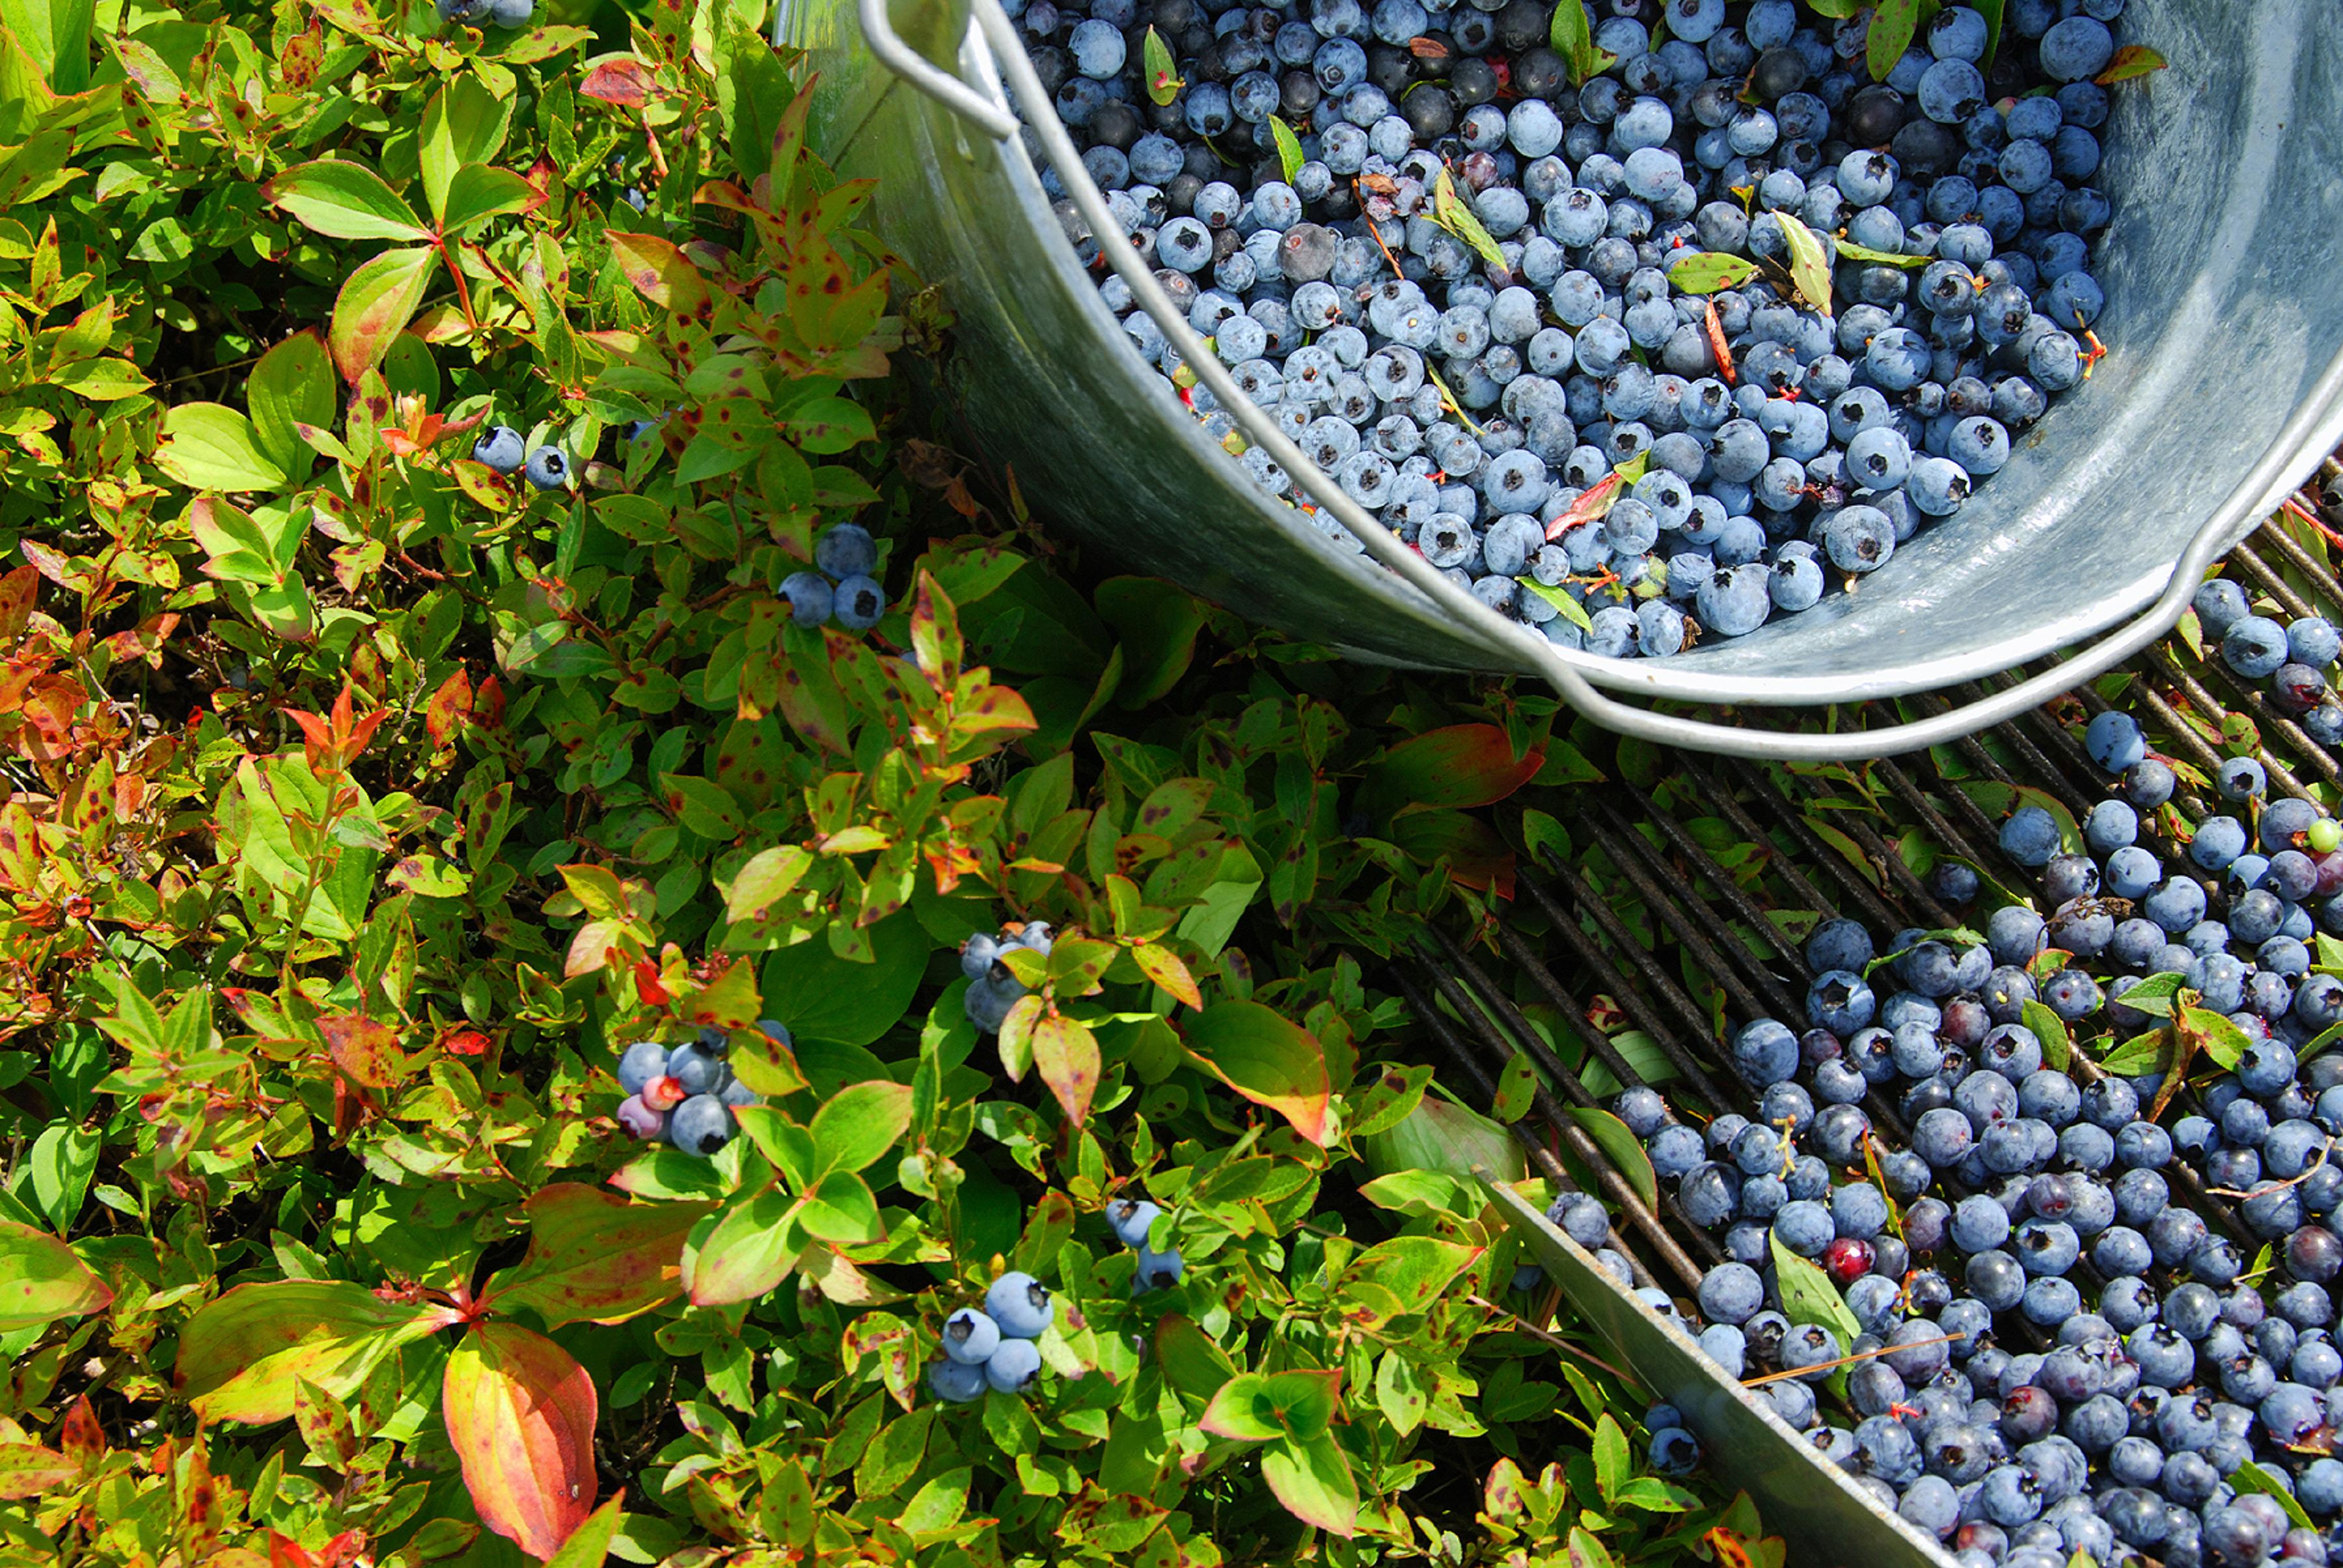 Treat yourself to wild Maine blueberries in summer months.